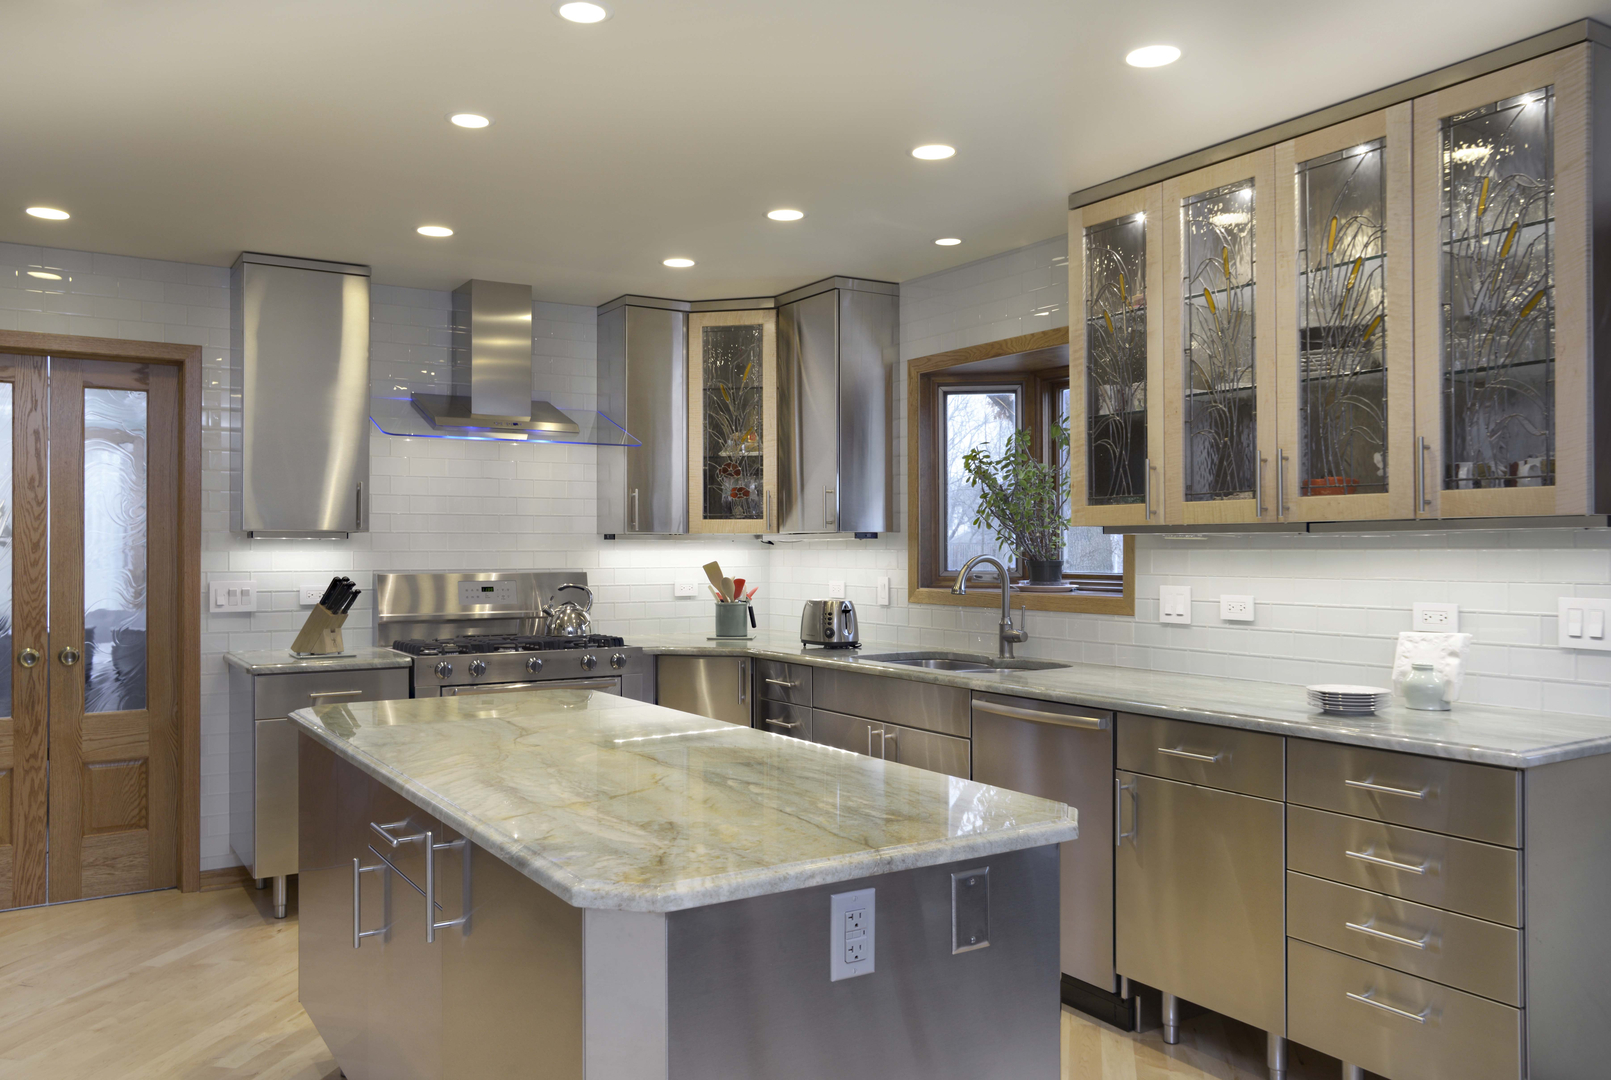 Stainless Steel Kitchen Cabinets Cost Stainless Steel Kitchens  Stainless Steel Kitchen Cabinets